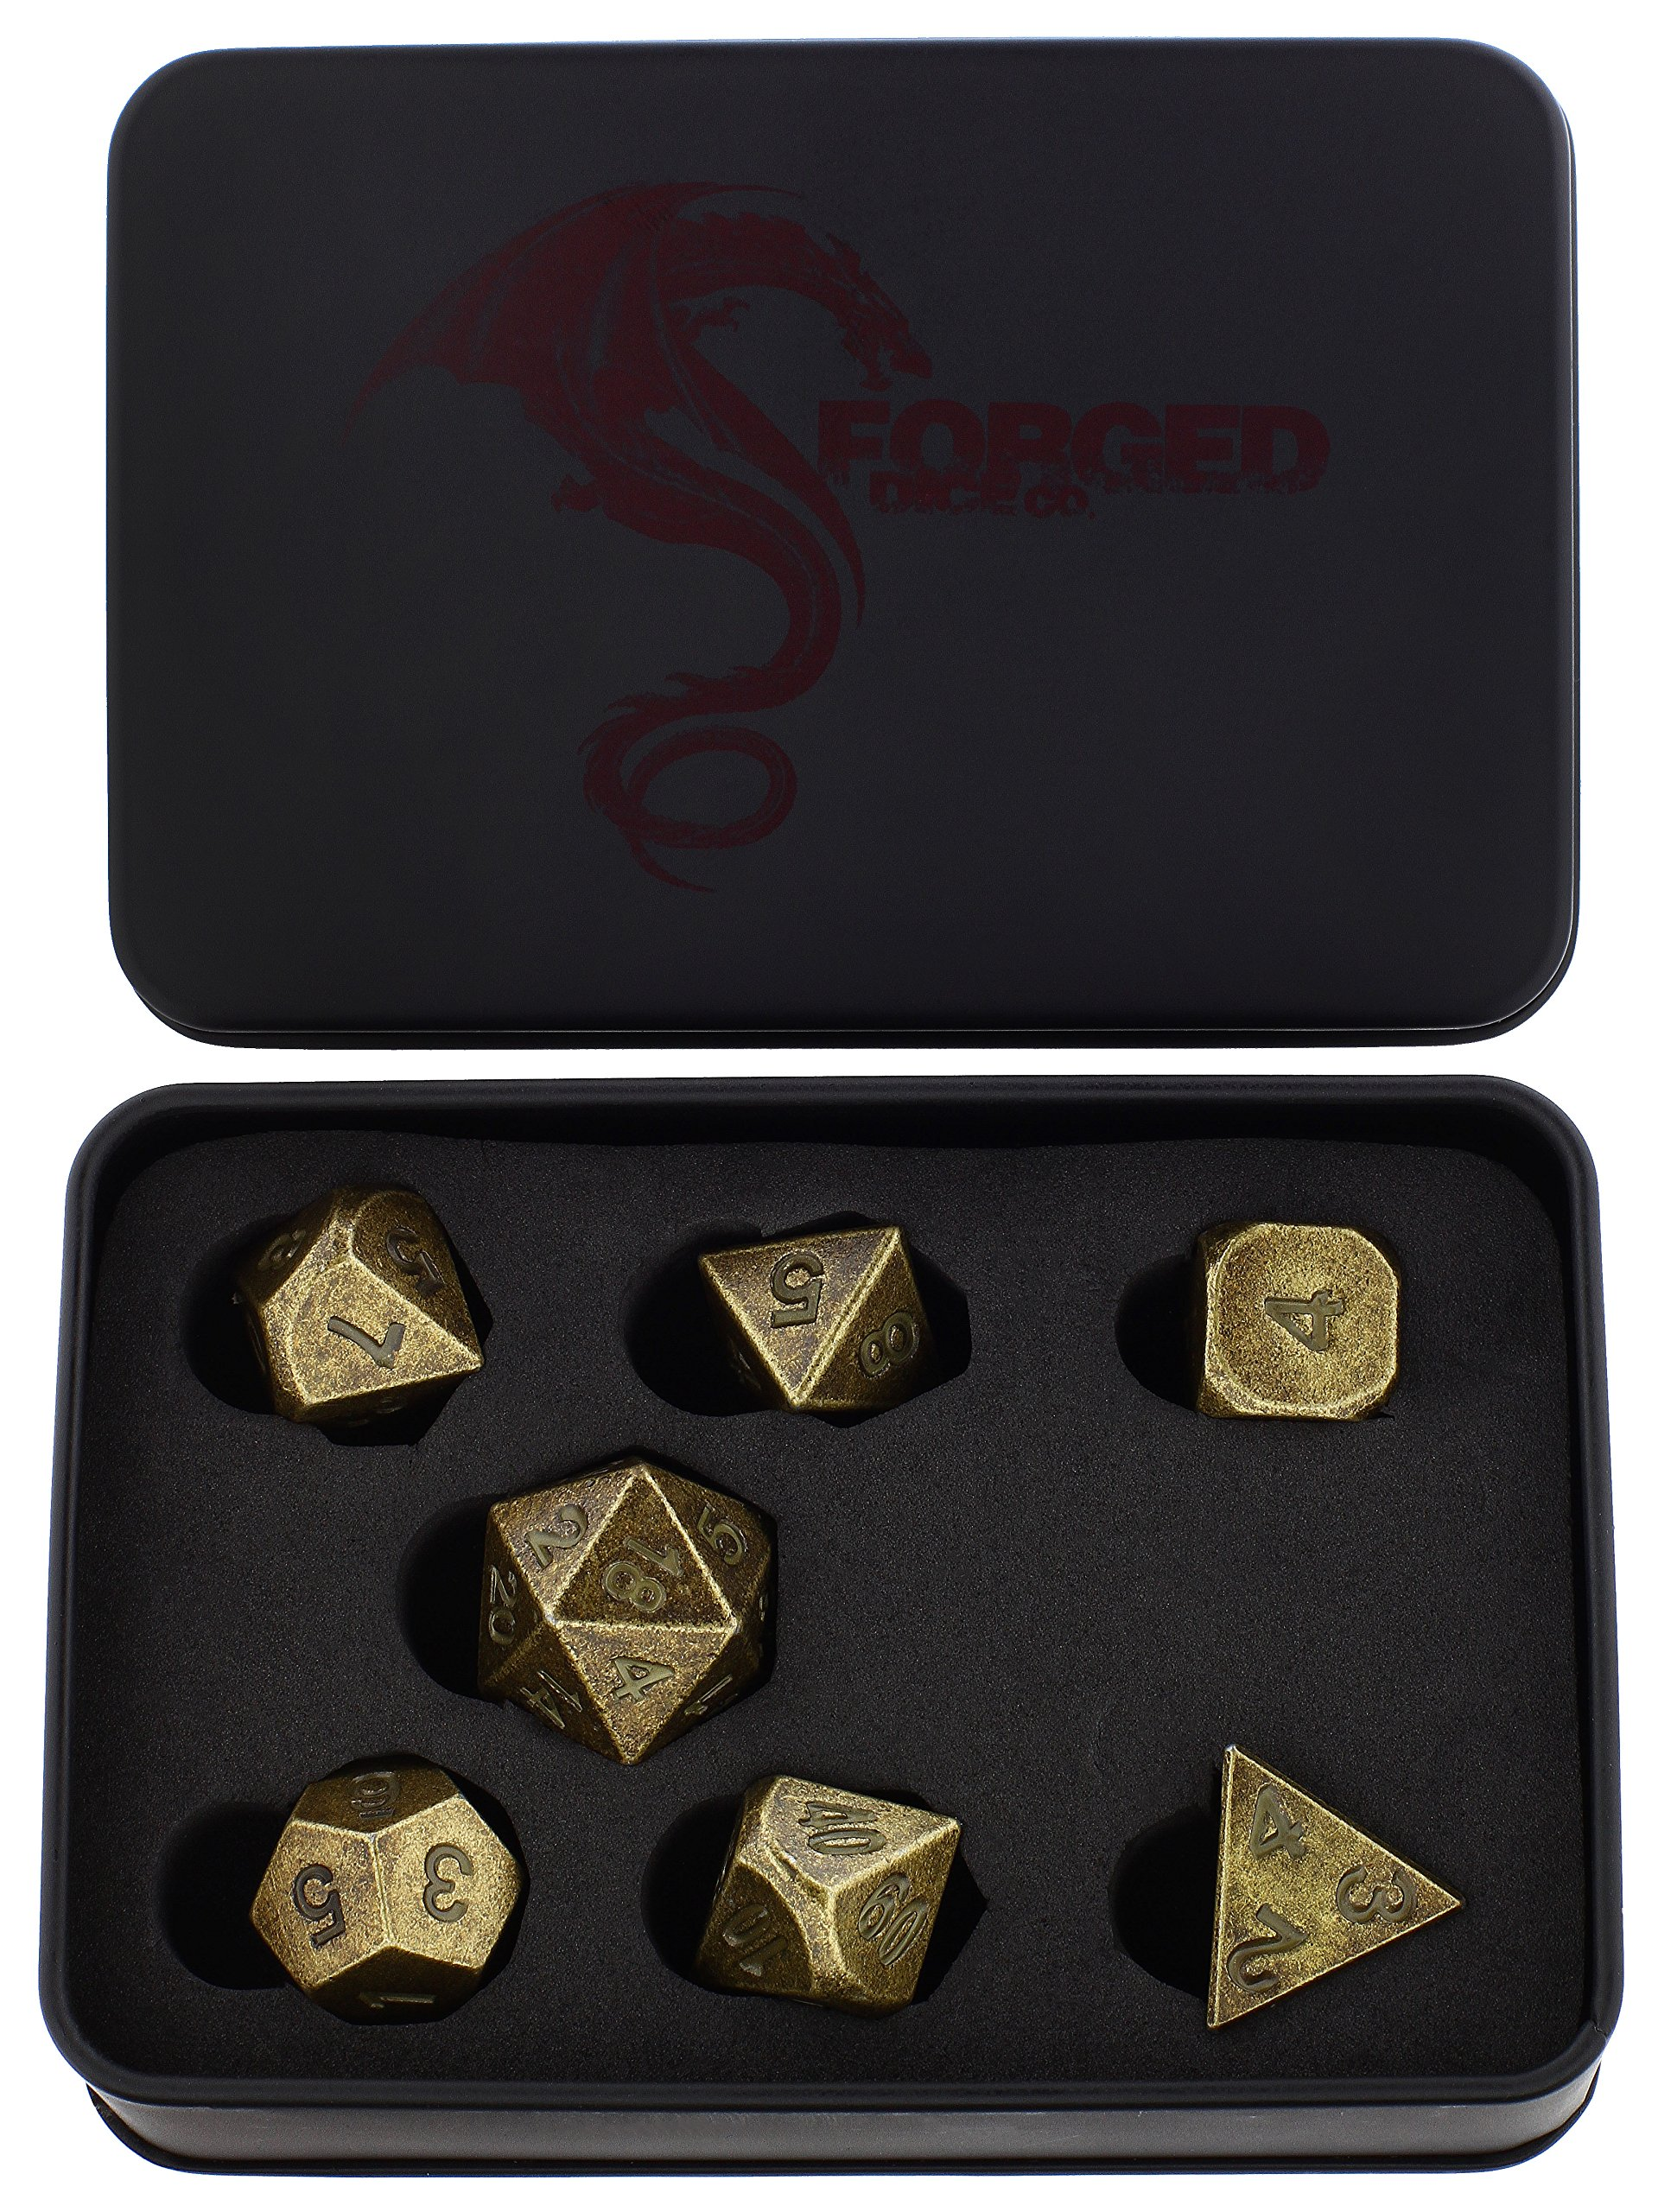 Forged Dice Co. Metal Dice Compatible with RPG games like Dungeons and Dragons, DnD, and Pathfinder (Thieves Gold Set of 7 Polyhedral w/ Tin, Set of 7 Polyhedral w/ Tin)